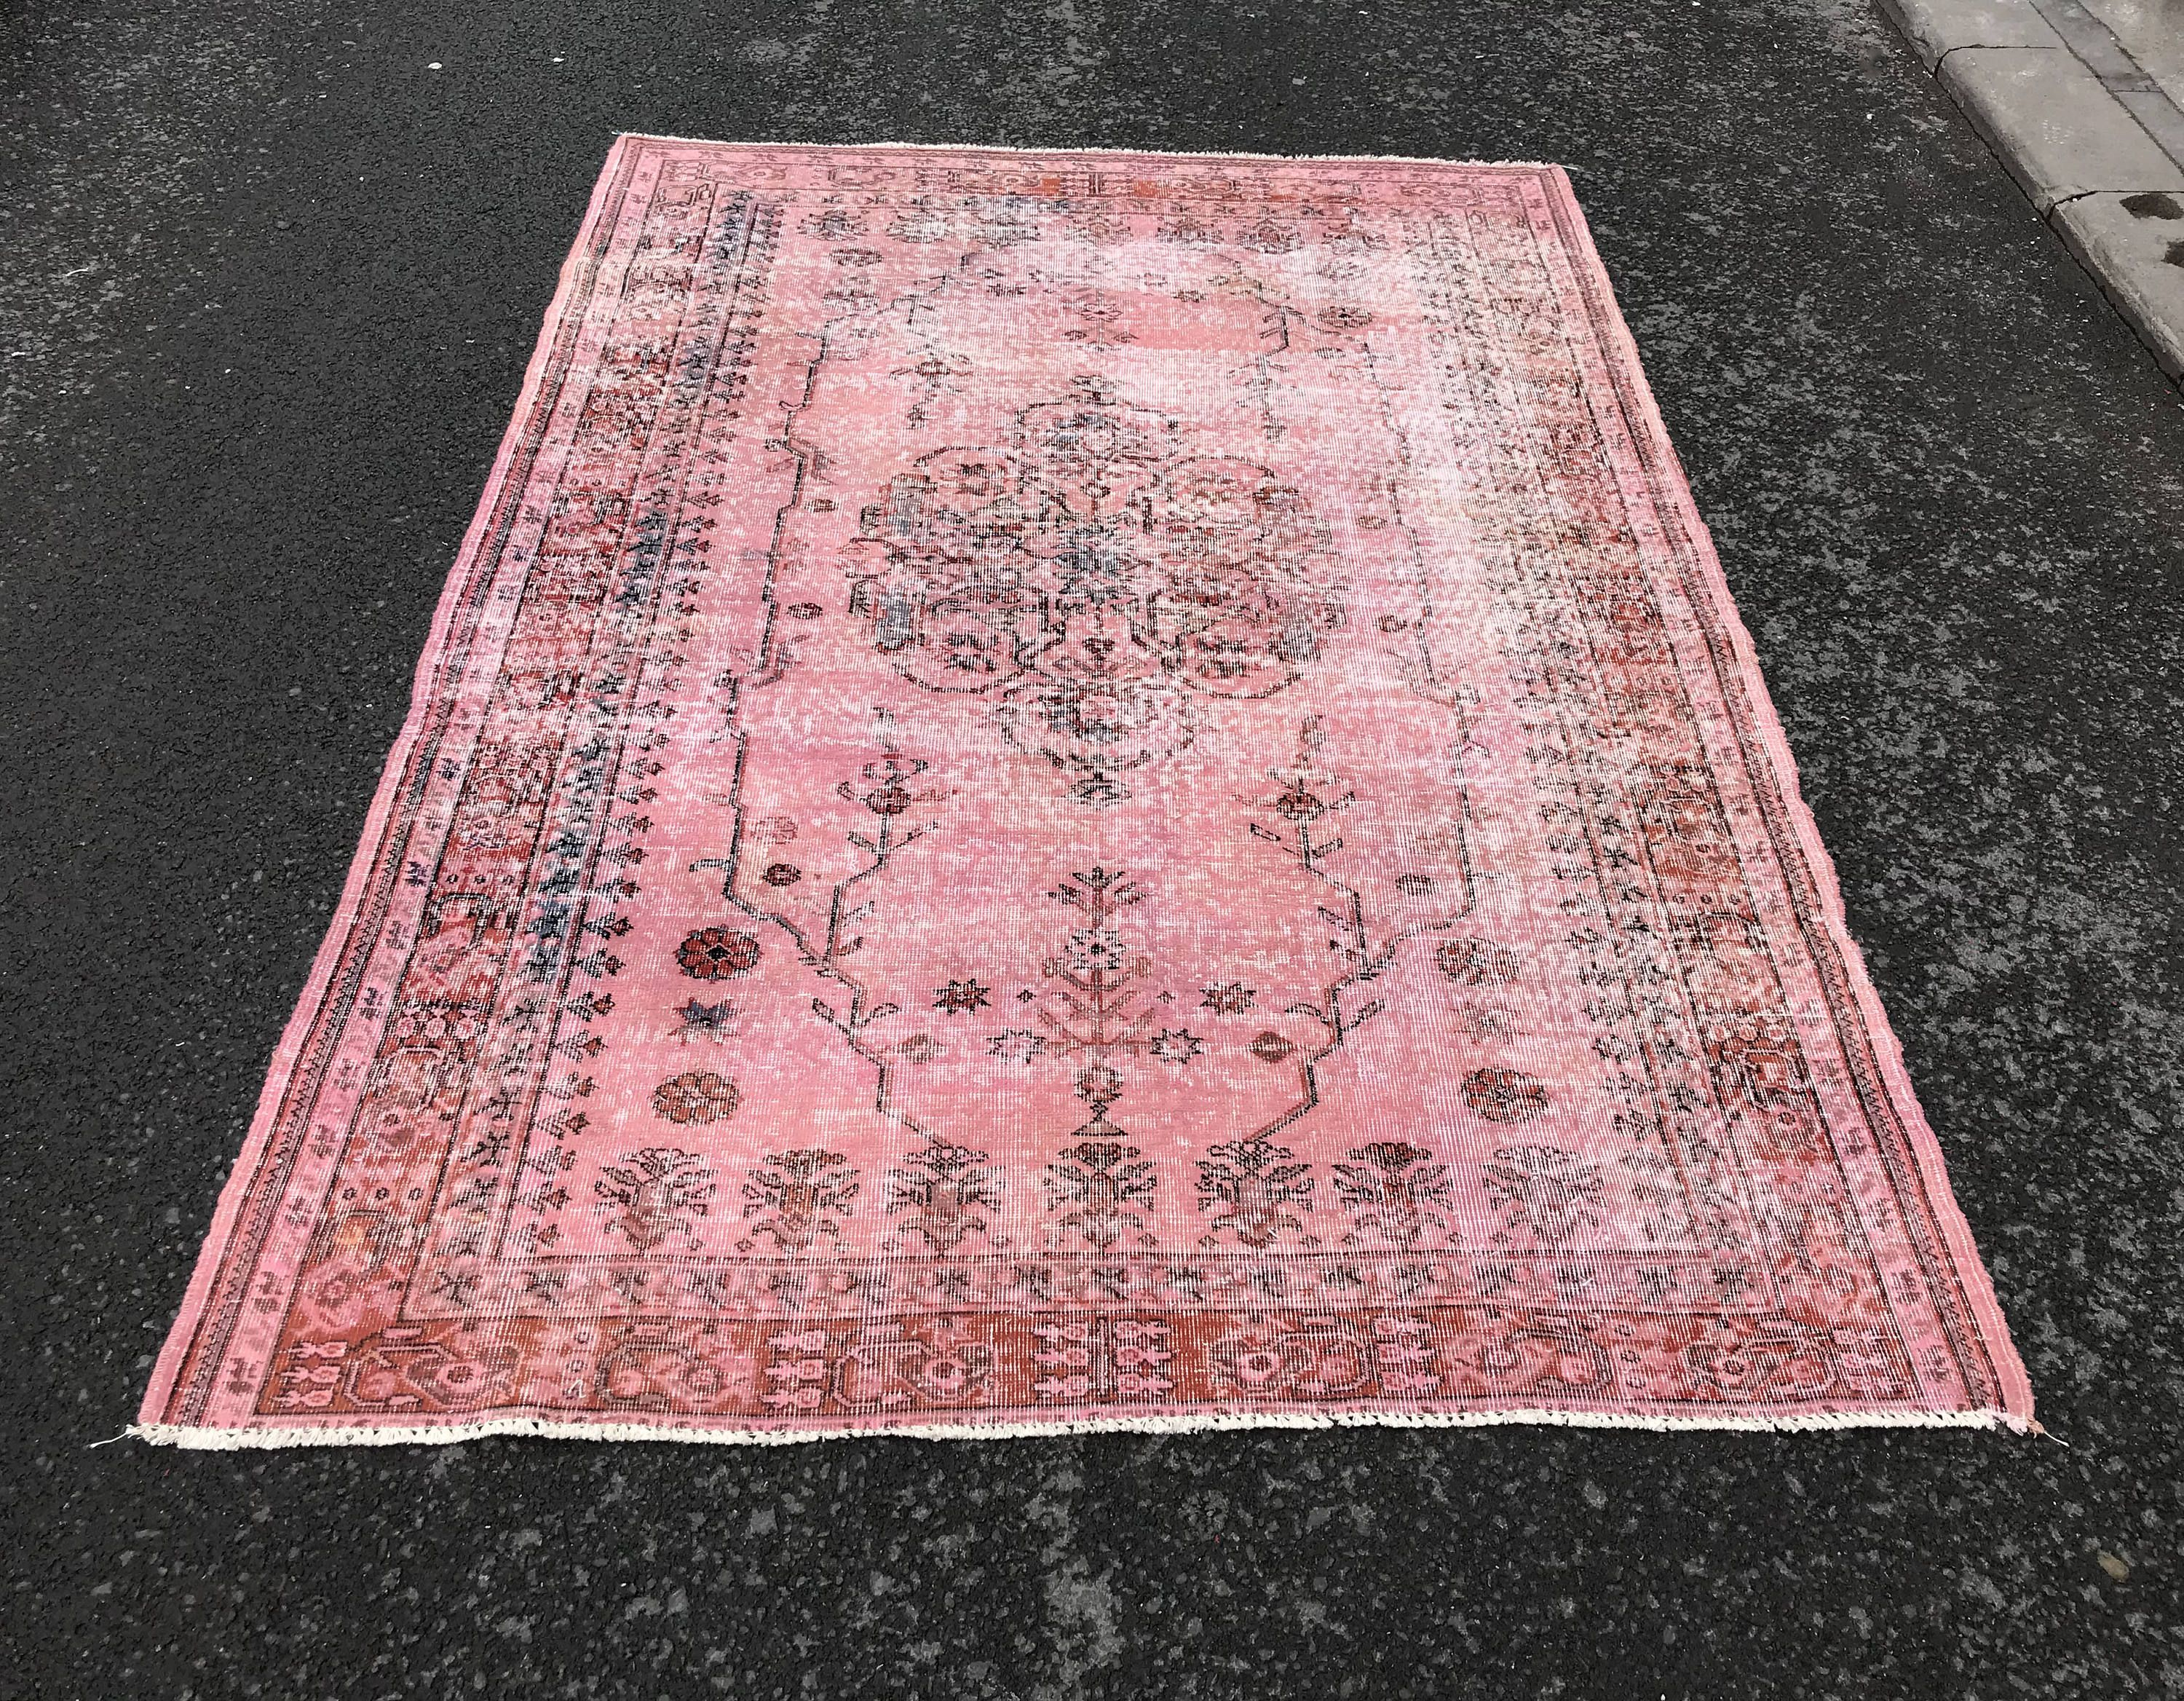 Vintage Rug With Unique Flower Patterns Pink Rug Oushak Rug